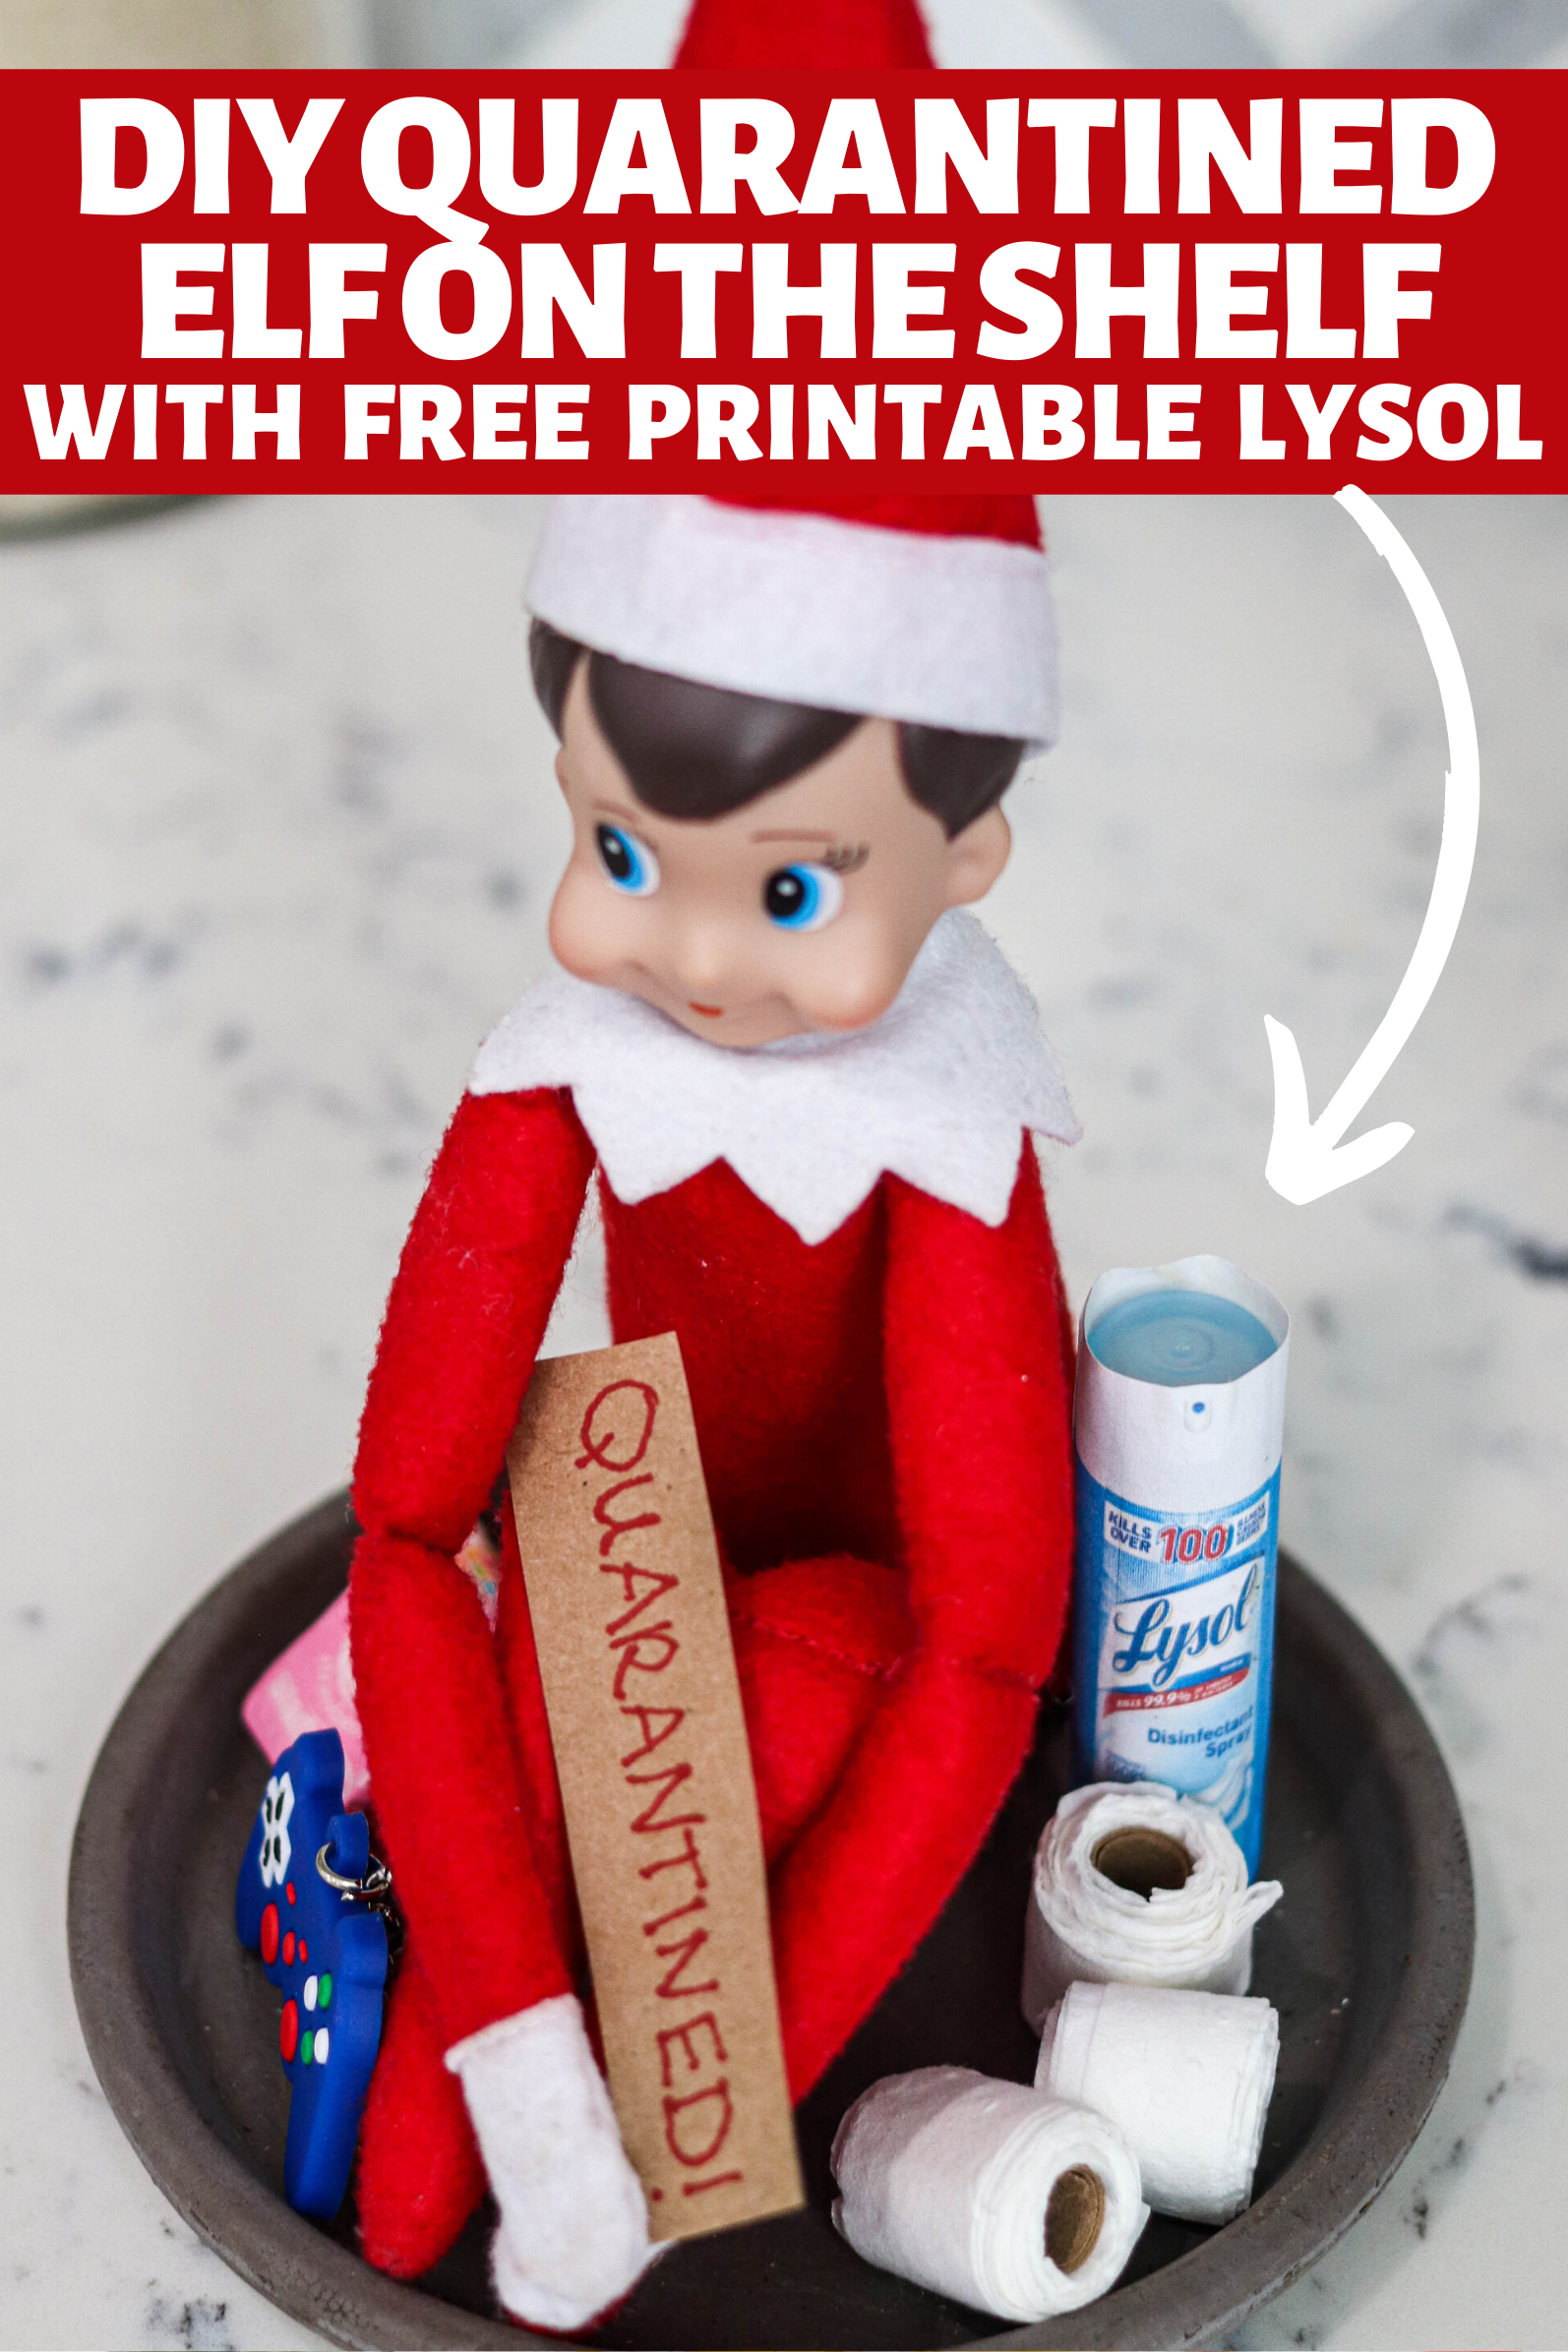 Elf on the Shelf is BACK in 2020 style! Here are step by step directions with FREE PRINTABLE LYSOL AND NOTE to make the DIY Quarantined Elf on the Shelf!